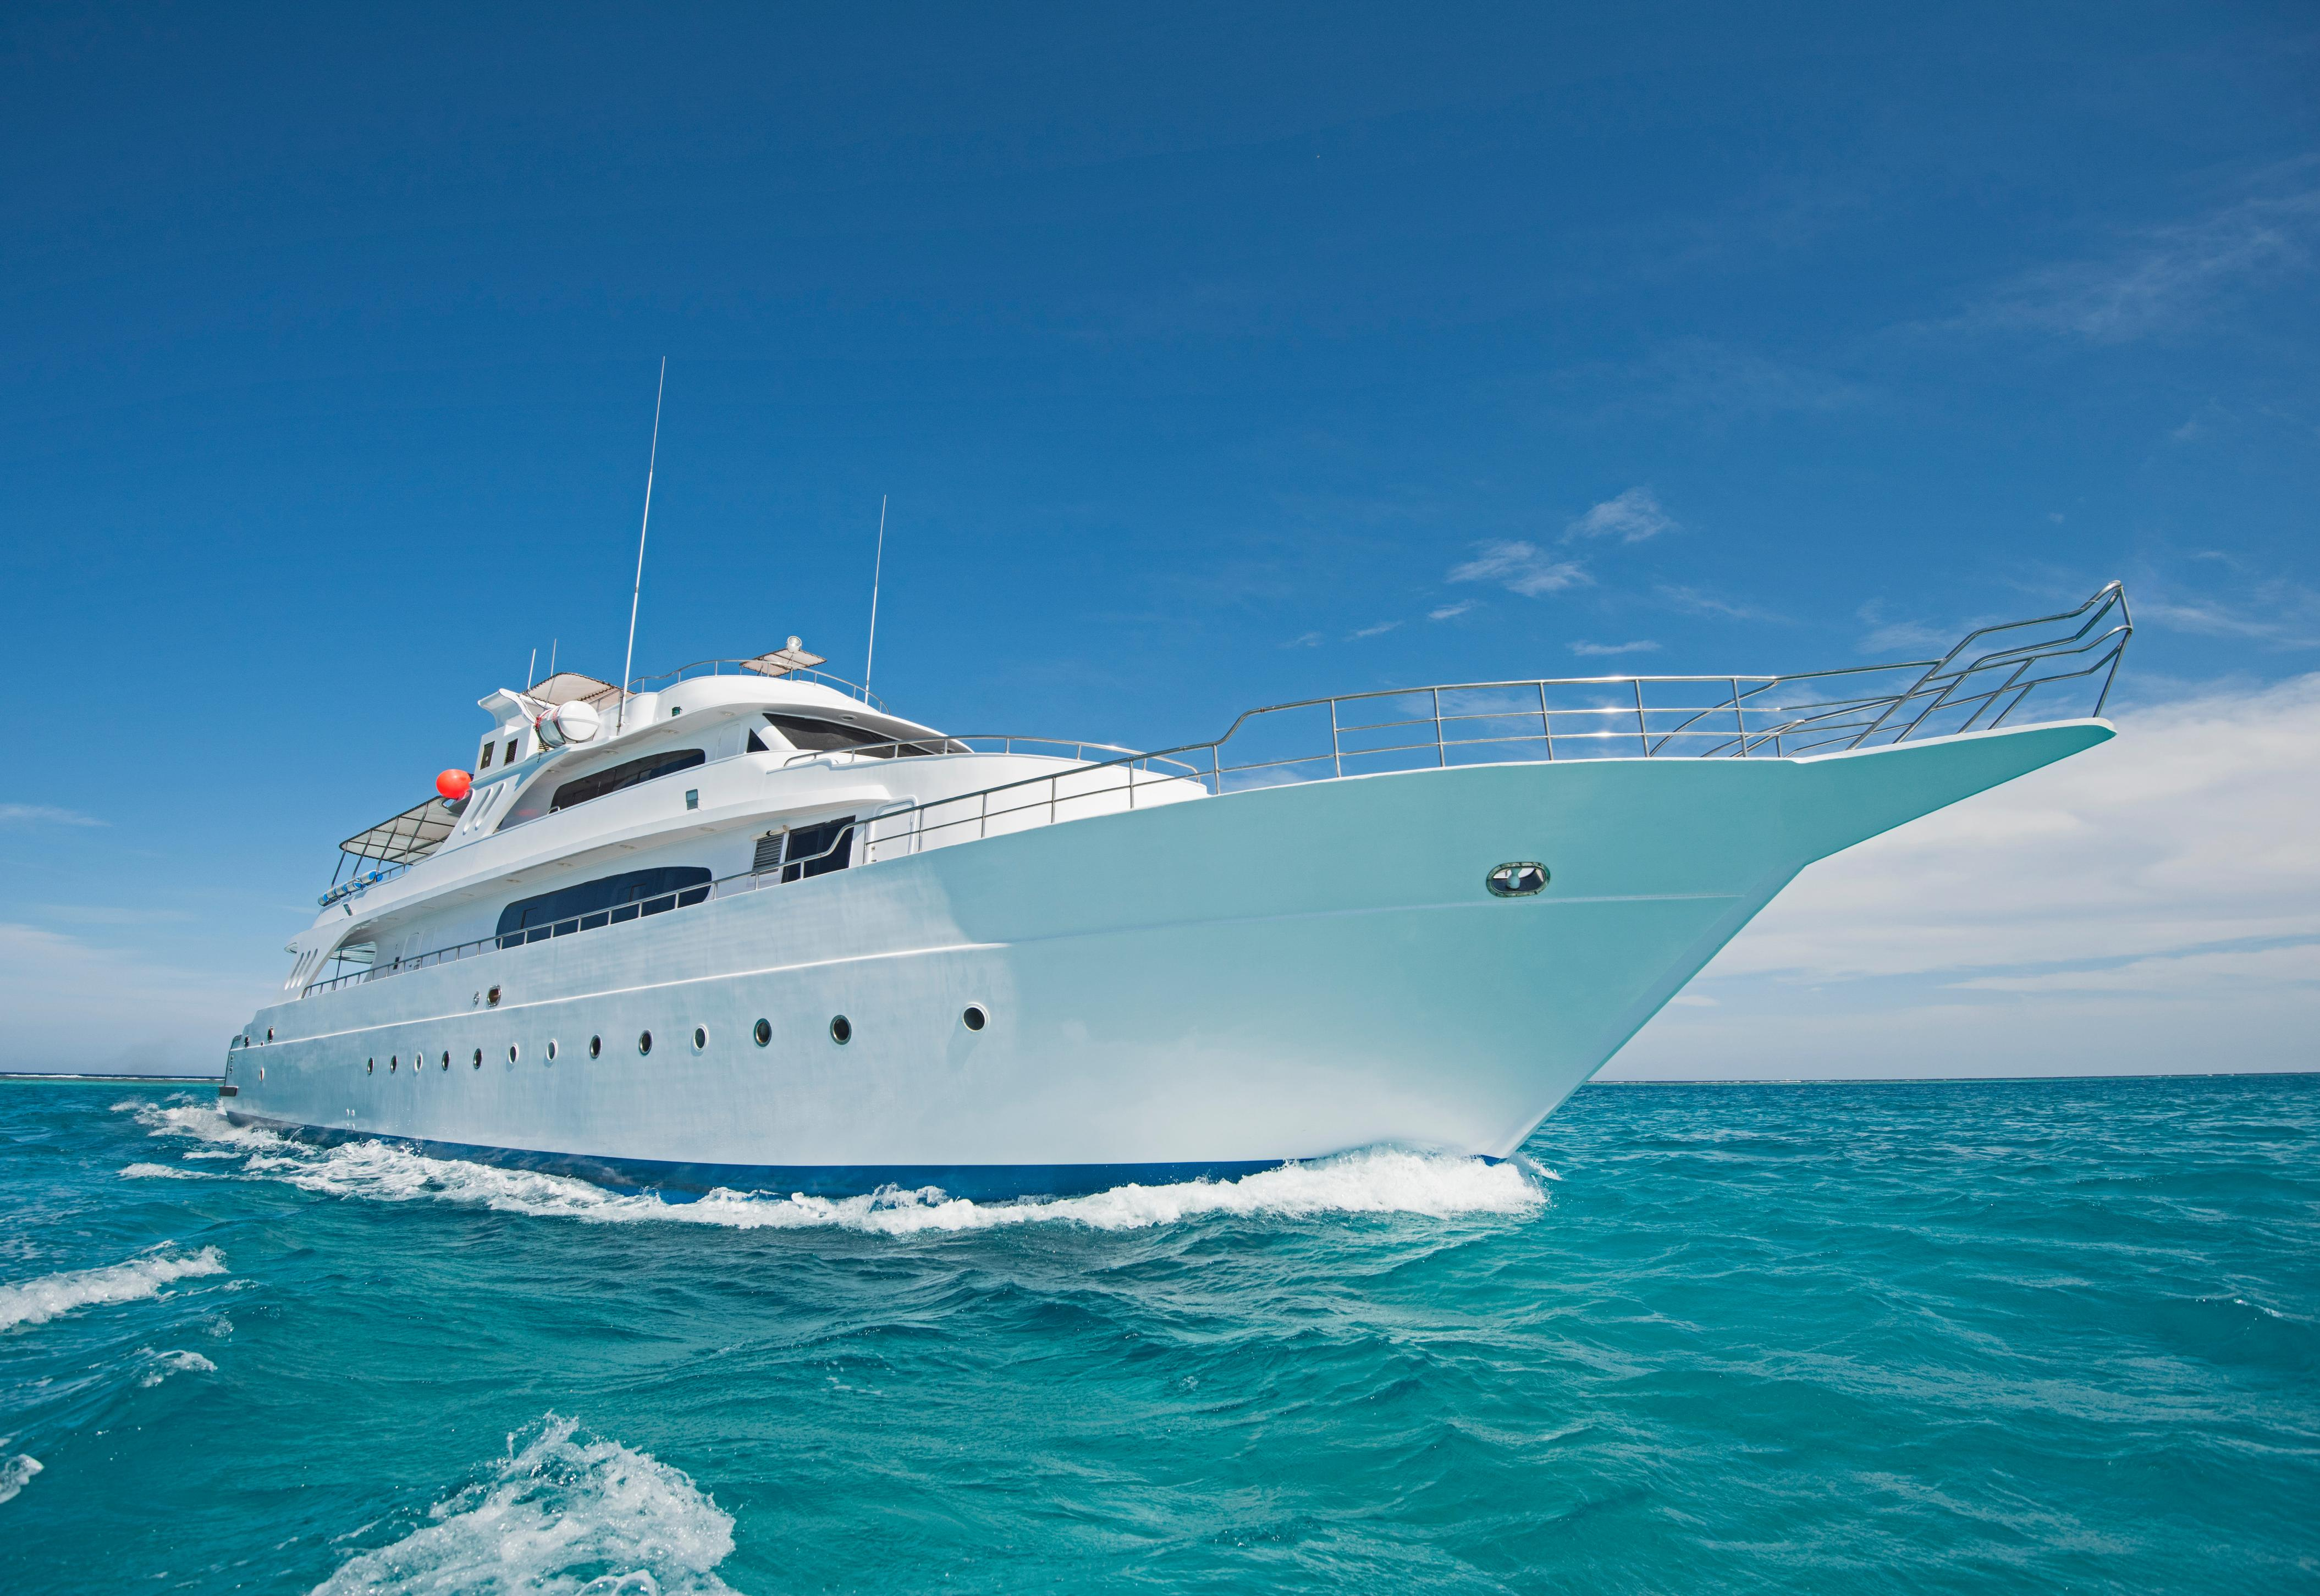 Luxury Yacht Tester Apply For This Dream Job With Hushhush Cnn Travel